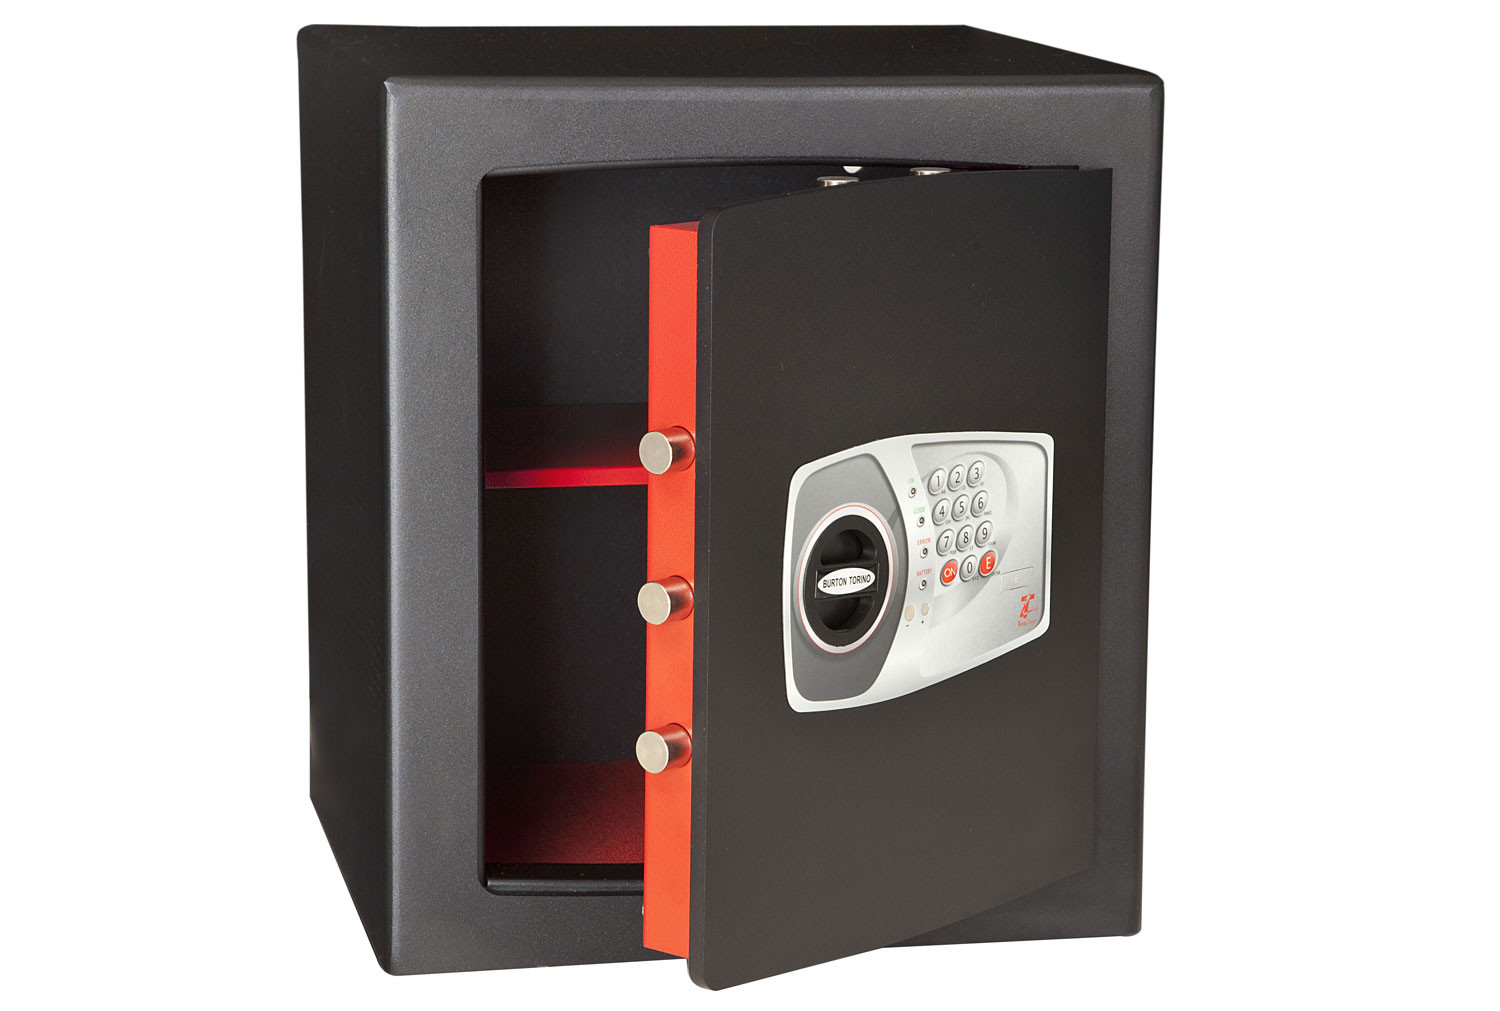 Burton Torino S2 Size 4 Safe With Electronic Lock (68ltrs)